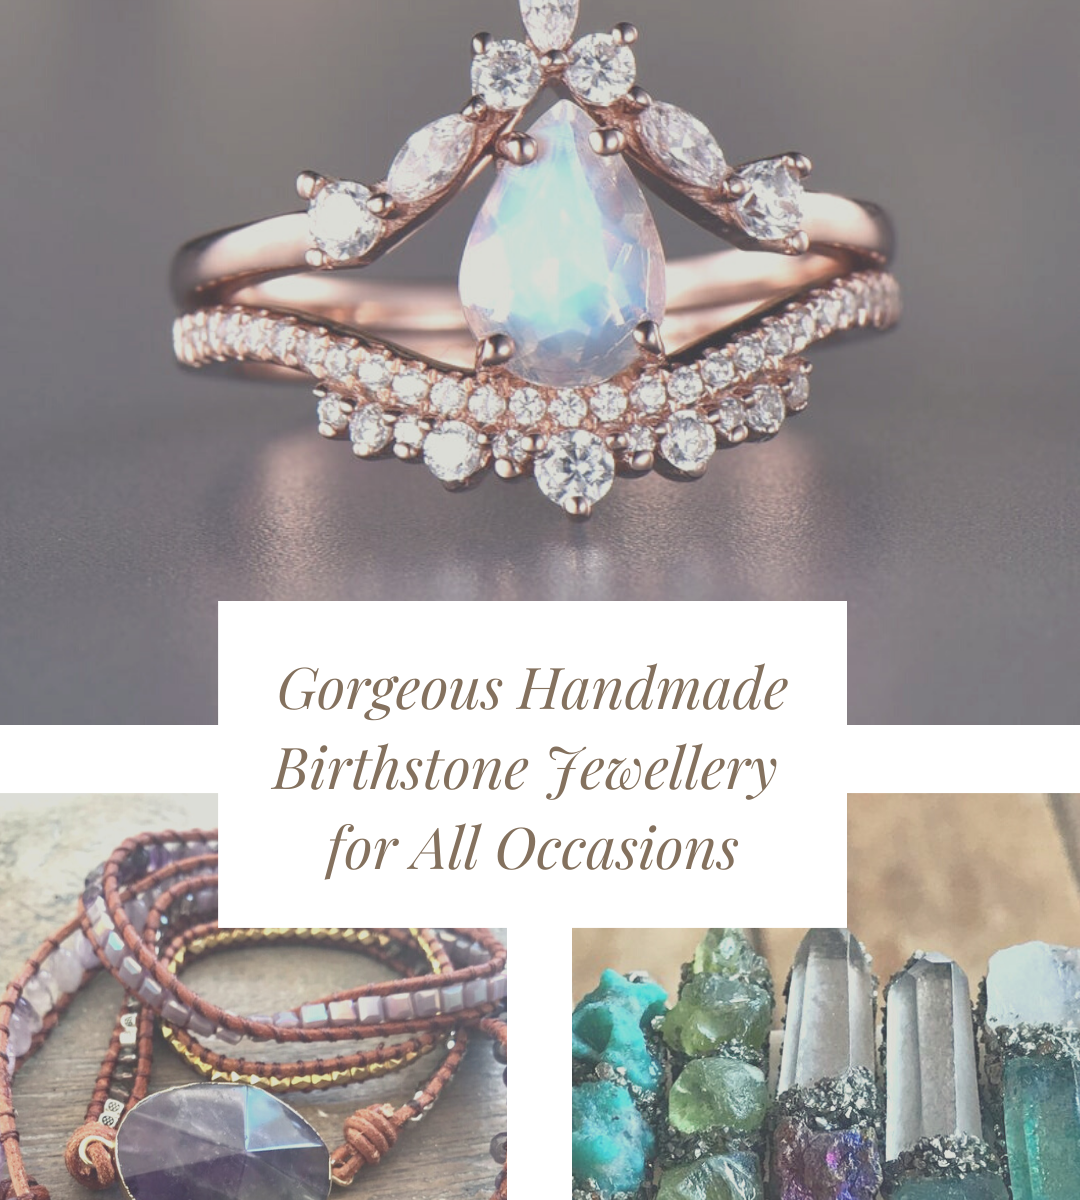 These handmade birthstone jewellery pieces are just gorgeous! They make wonderful gifts for the women in your life. Oh and the engagement rings are breathtaking!